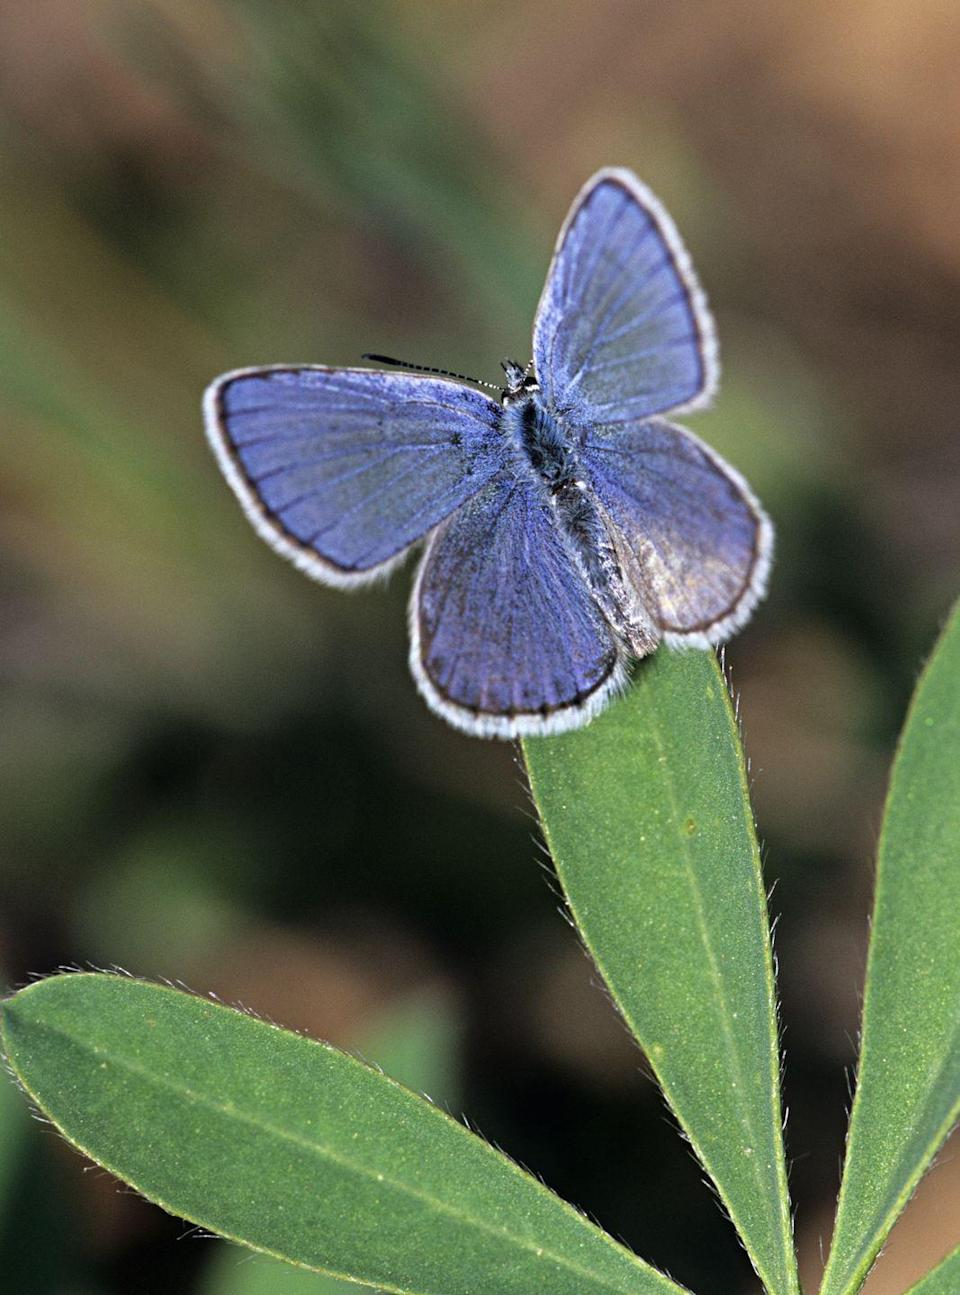 <p><strong>Karner Blue - </strong>Only found in the Oak Savanna ecosystem, the Karner Blue butterfly suffers as its home becomes smaller and smaller. Restoration efforts are underway.</p>